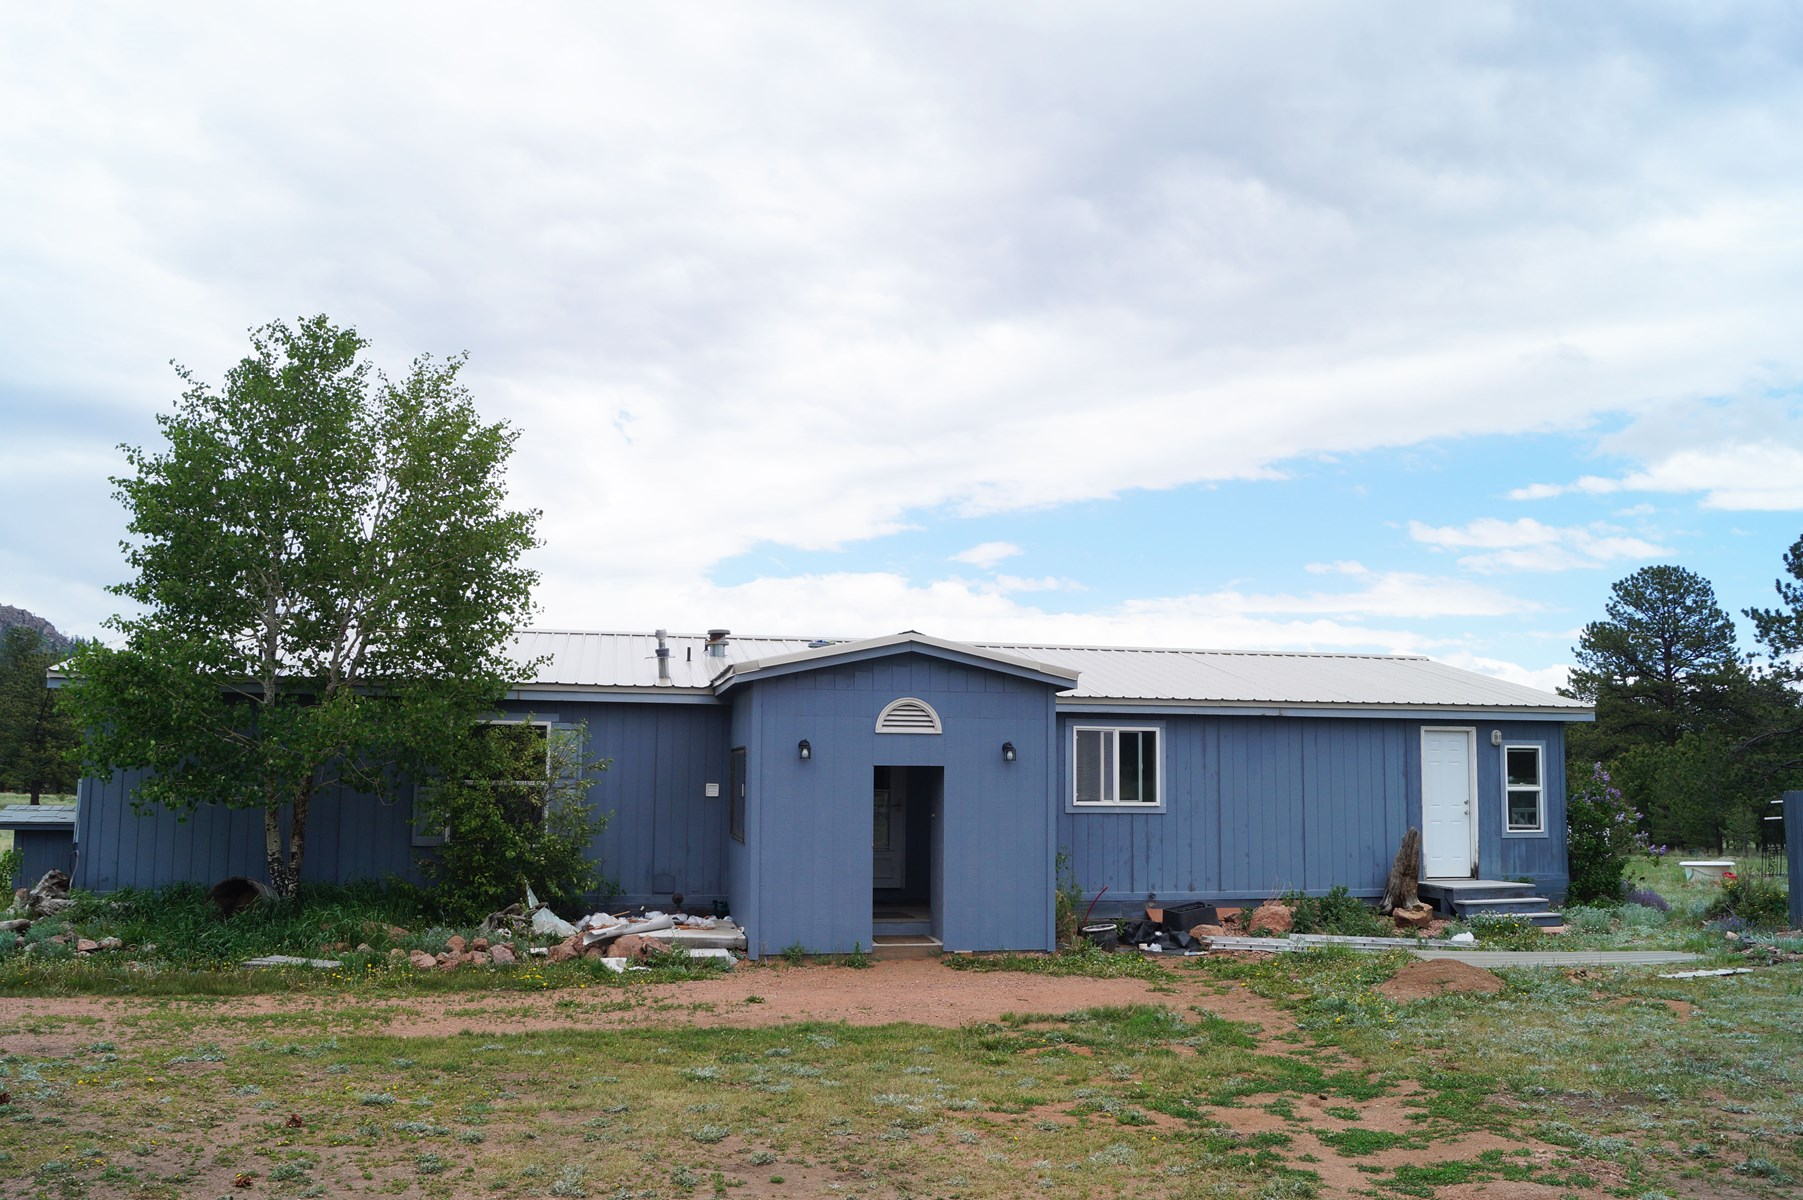 House with Acreage For Sale in Guffey, Colorado